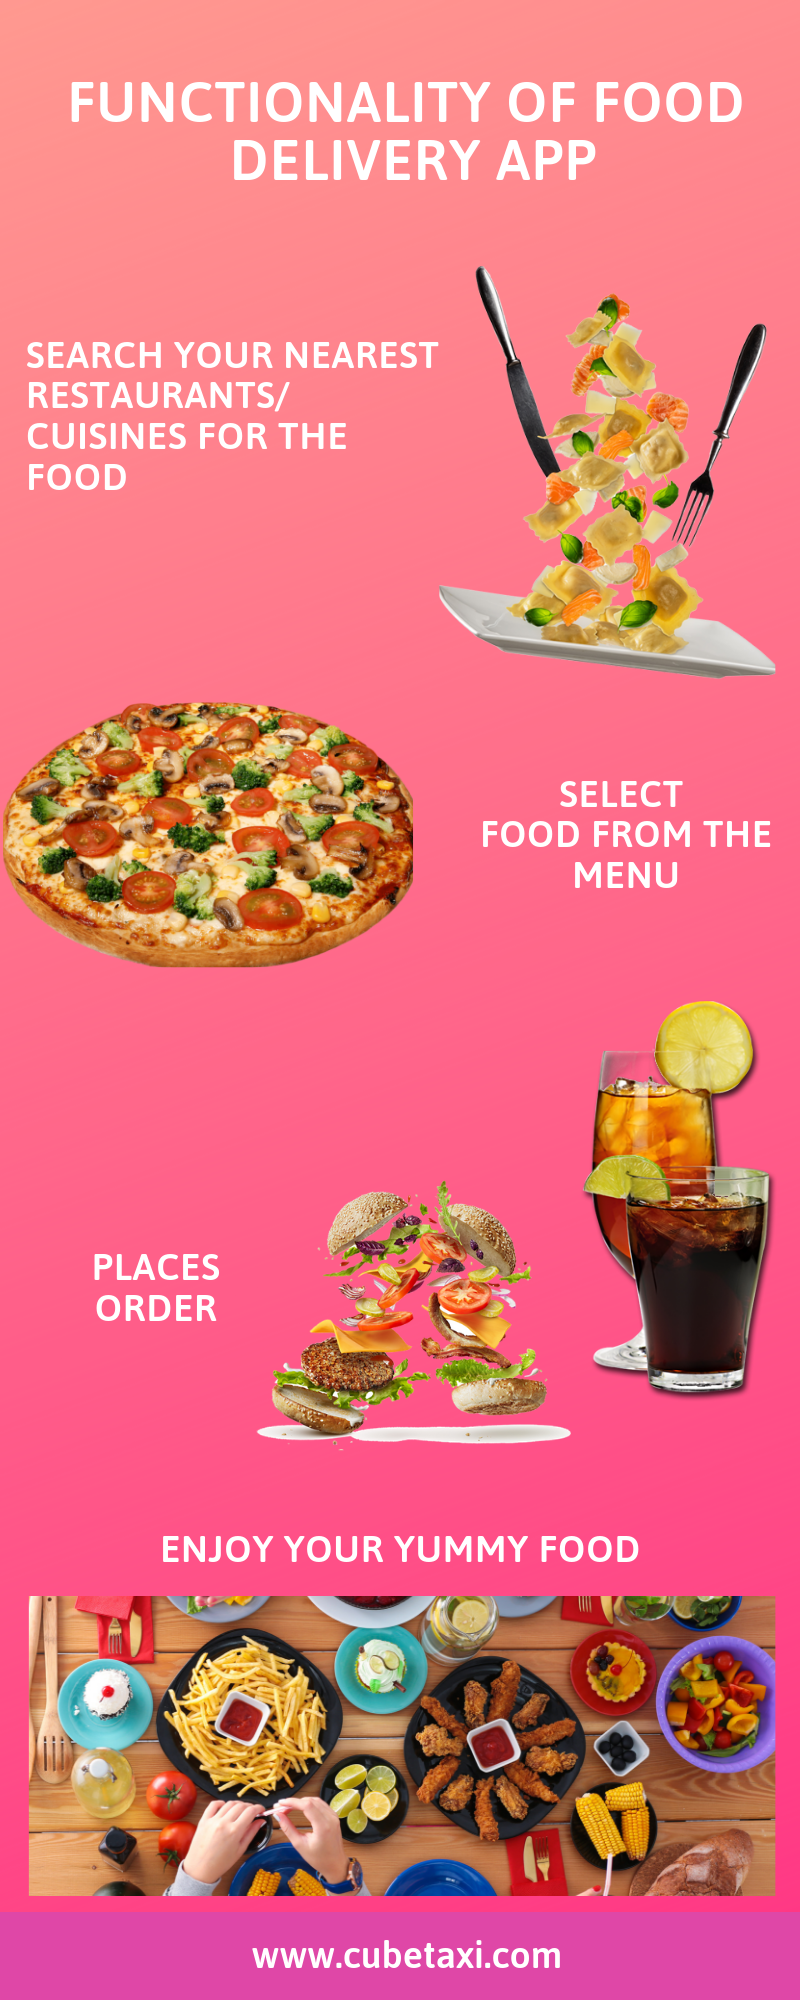 Check the functionality of food delivery app with this